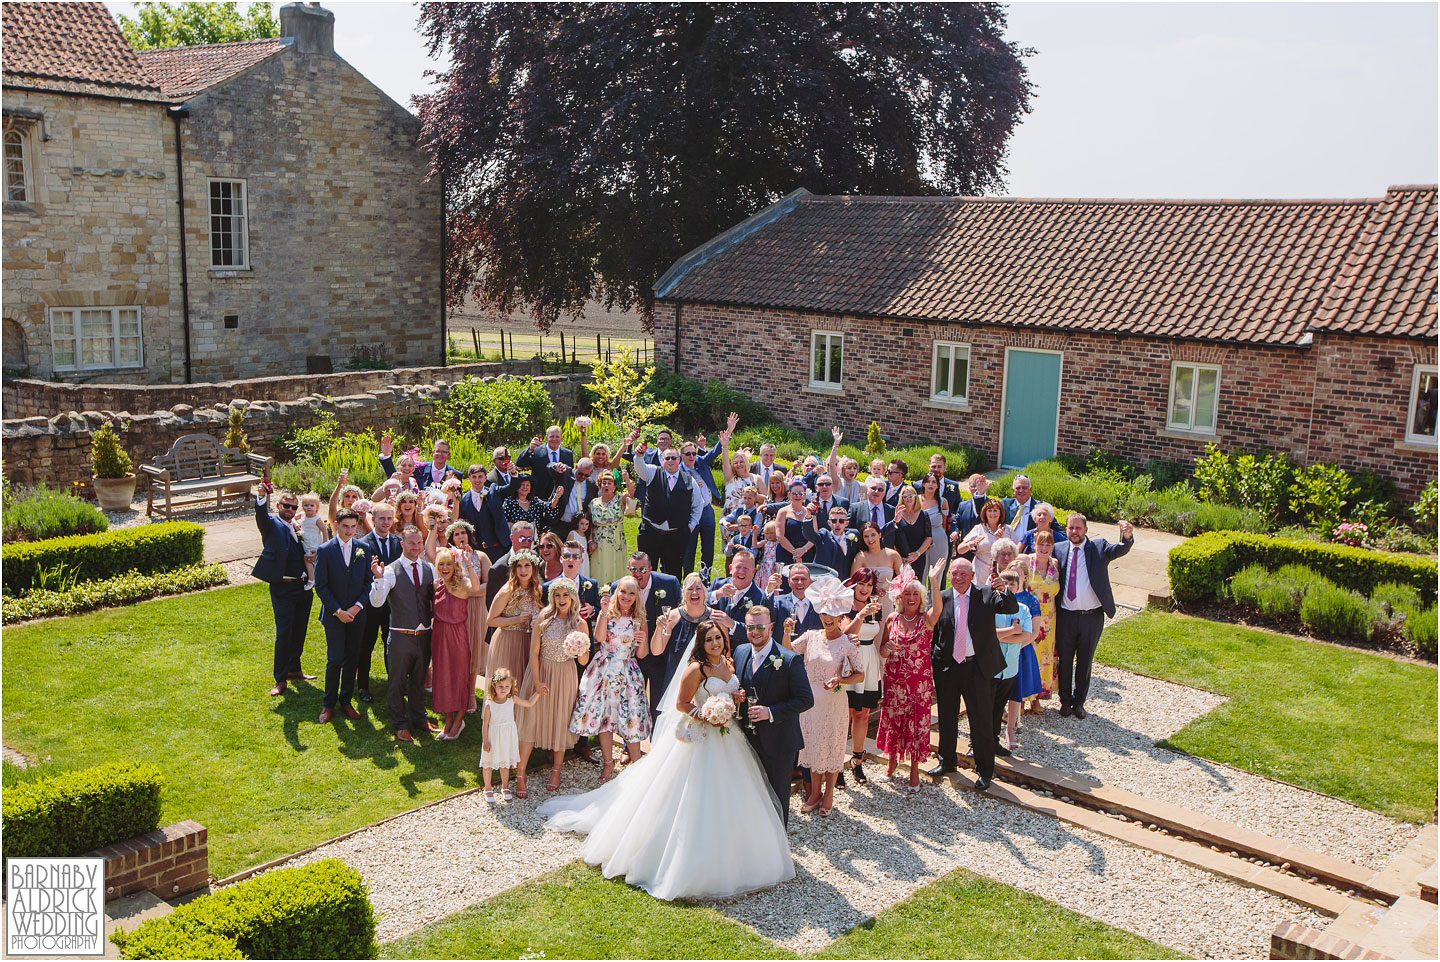 Priory Cottages Wedding Photos, Priory Cottages Wetherby Wedding Photographer, Yorkshire Barn Wedding Photography, West Yorkshire Exclusive Wedding Venue, Wedding photos by Barnaby Aldrick